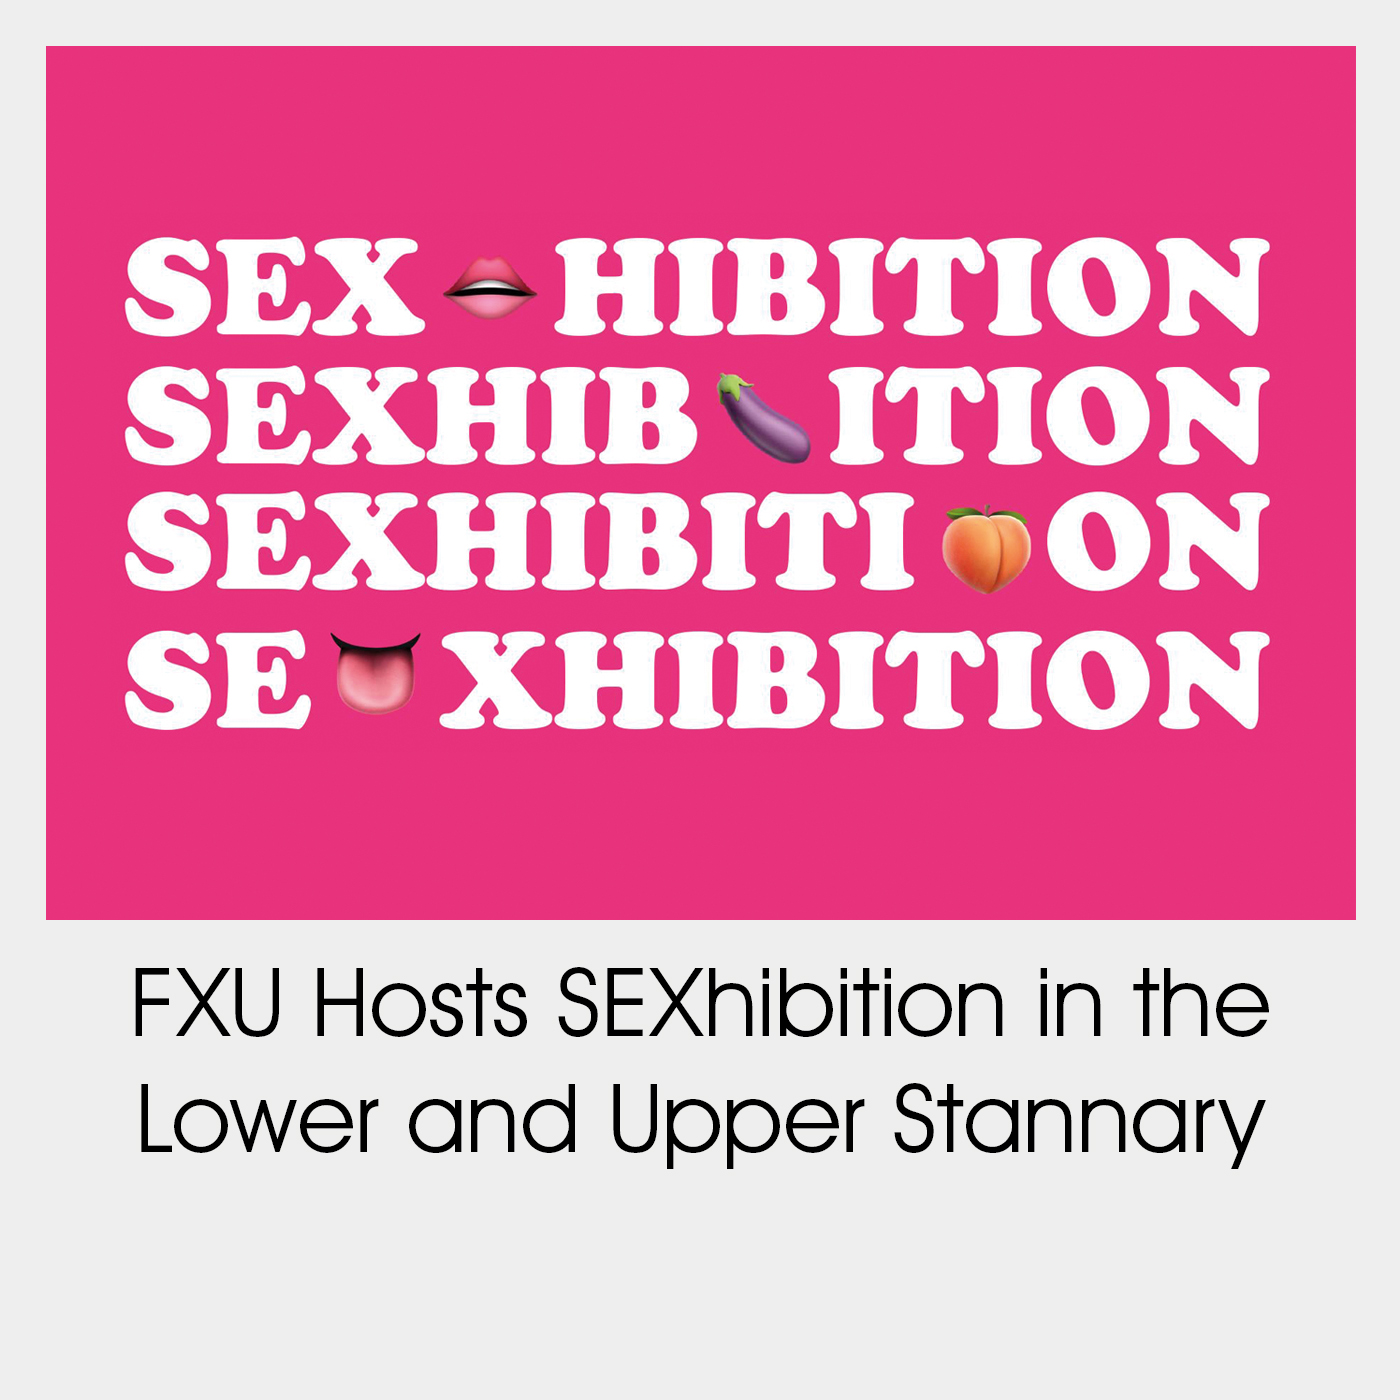 Sexhibition Event